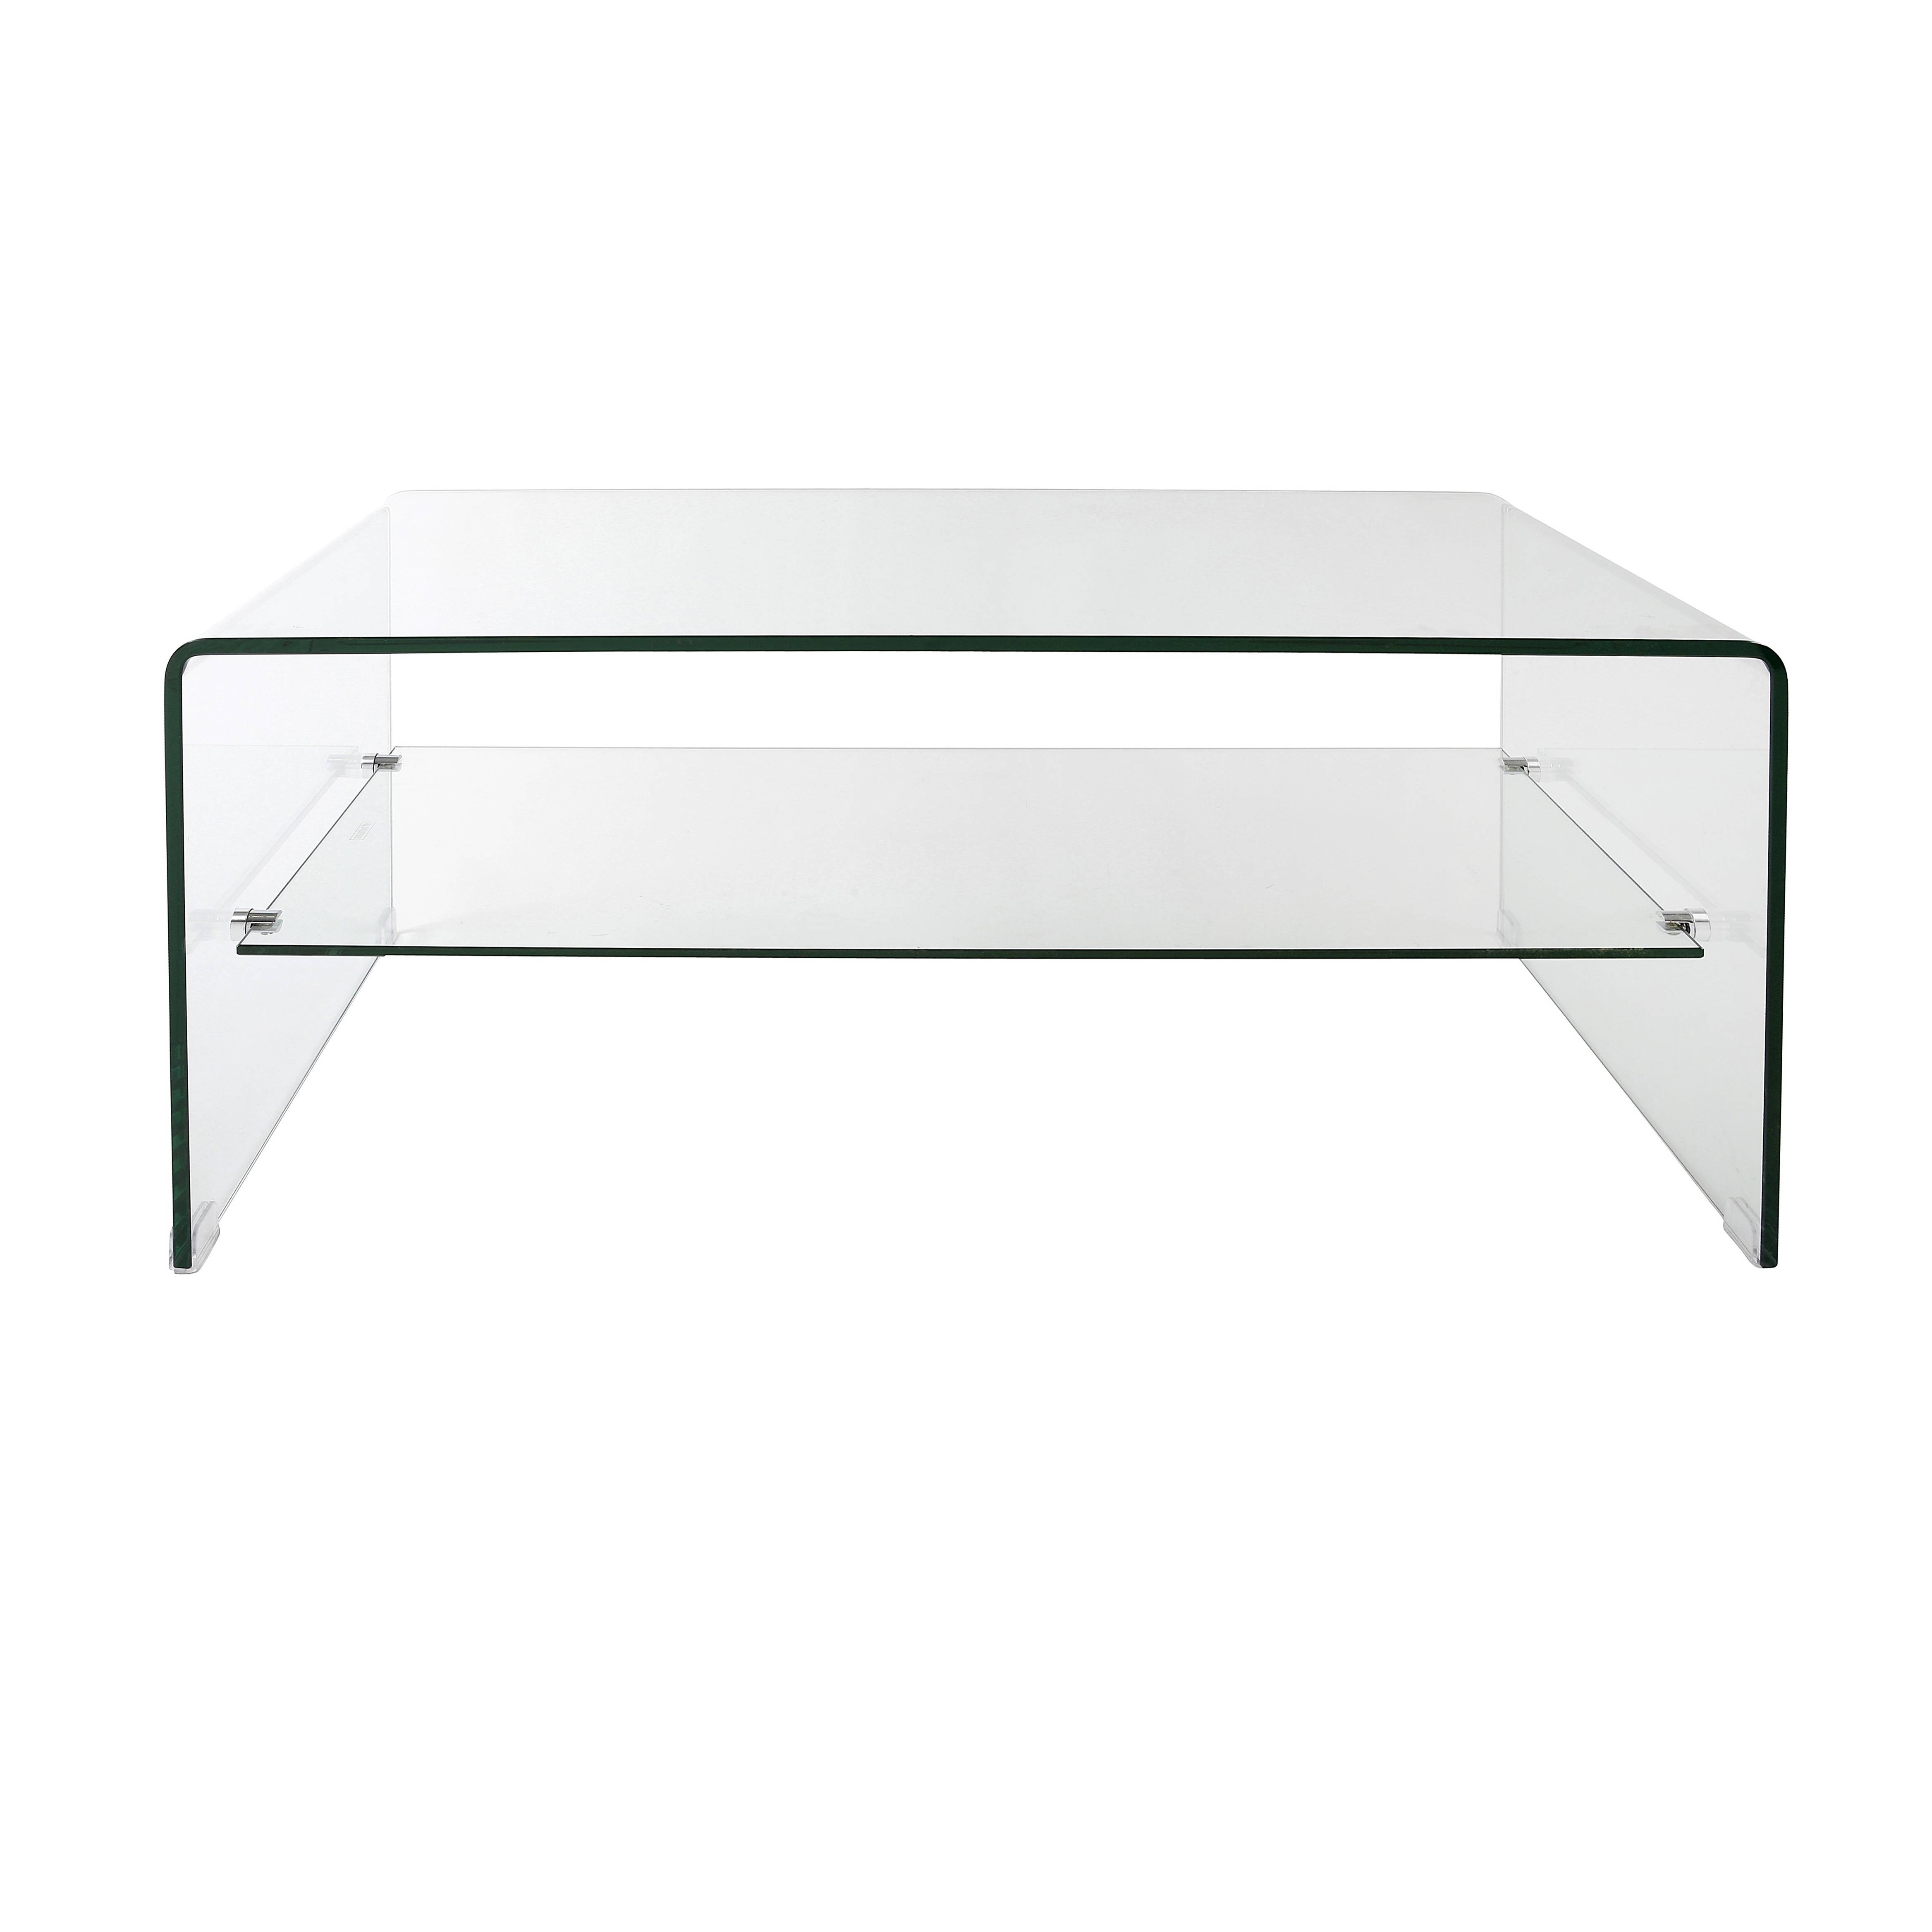 Curved Glass Coffee Table Loading – Cocinacentral.co for Curved Glass Coffee Tables (Image 16 of 30)